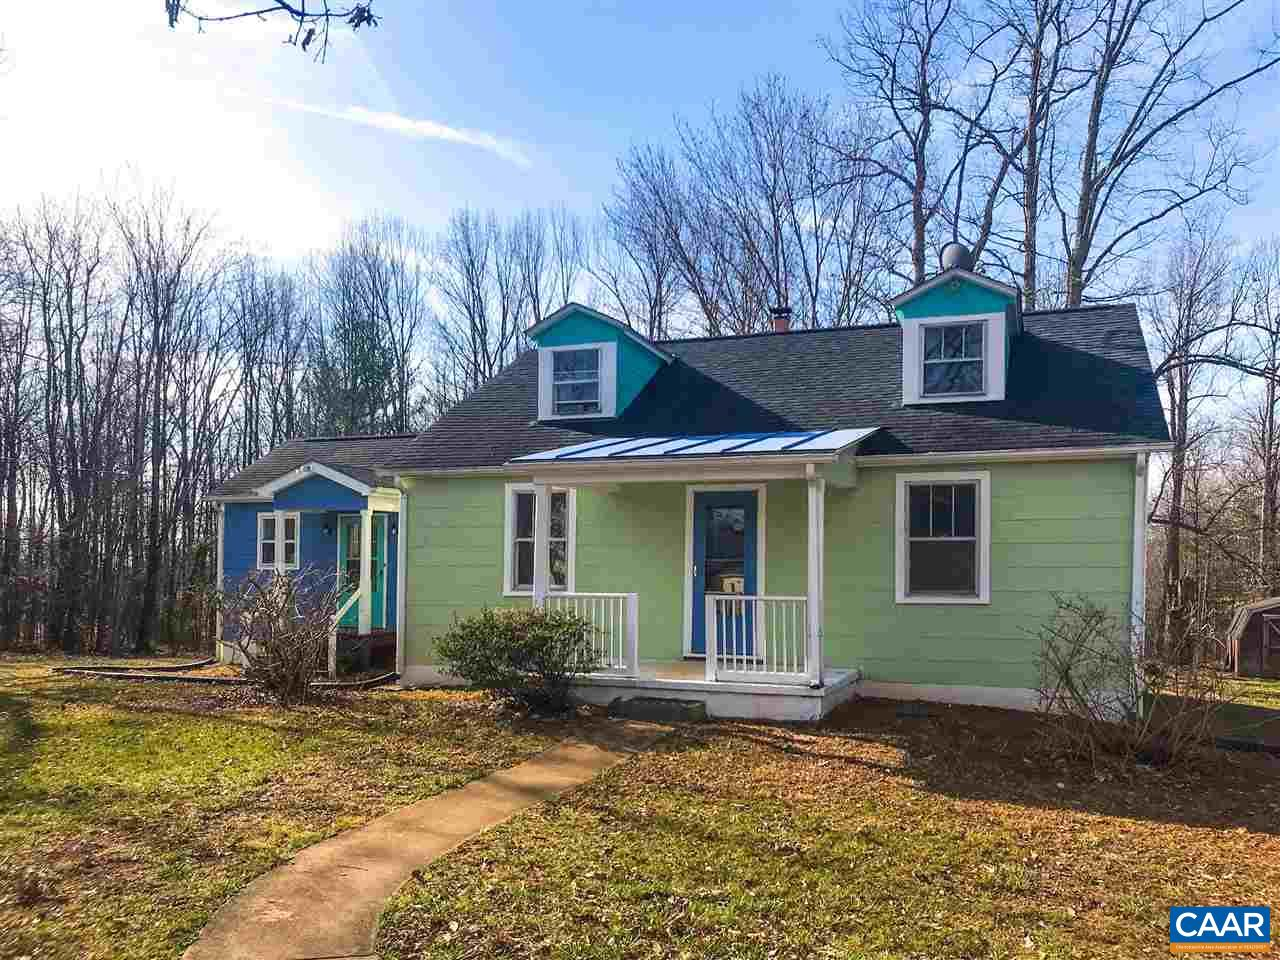 home for sale , MLS #587602, 3040 Fredericksburg Rd